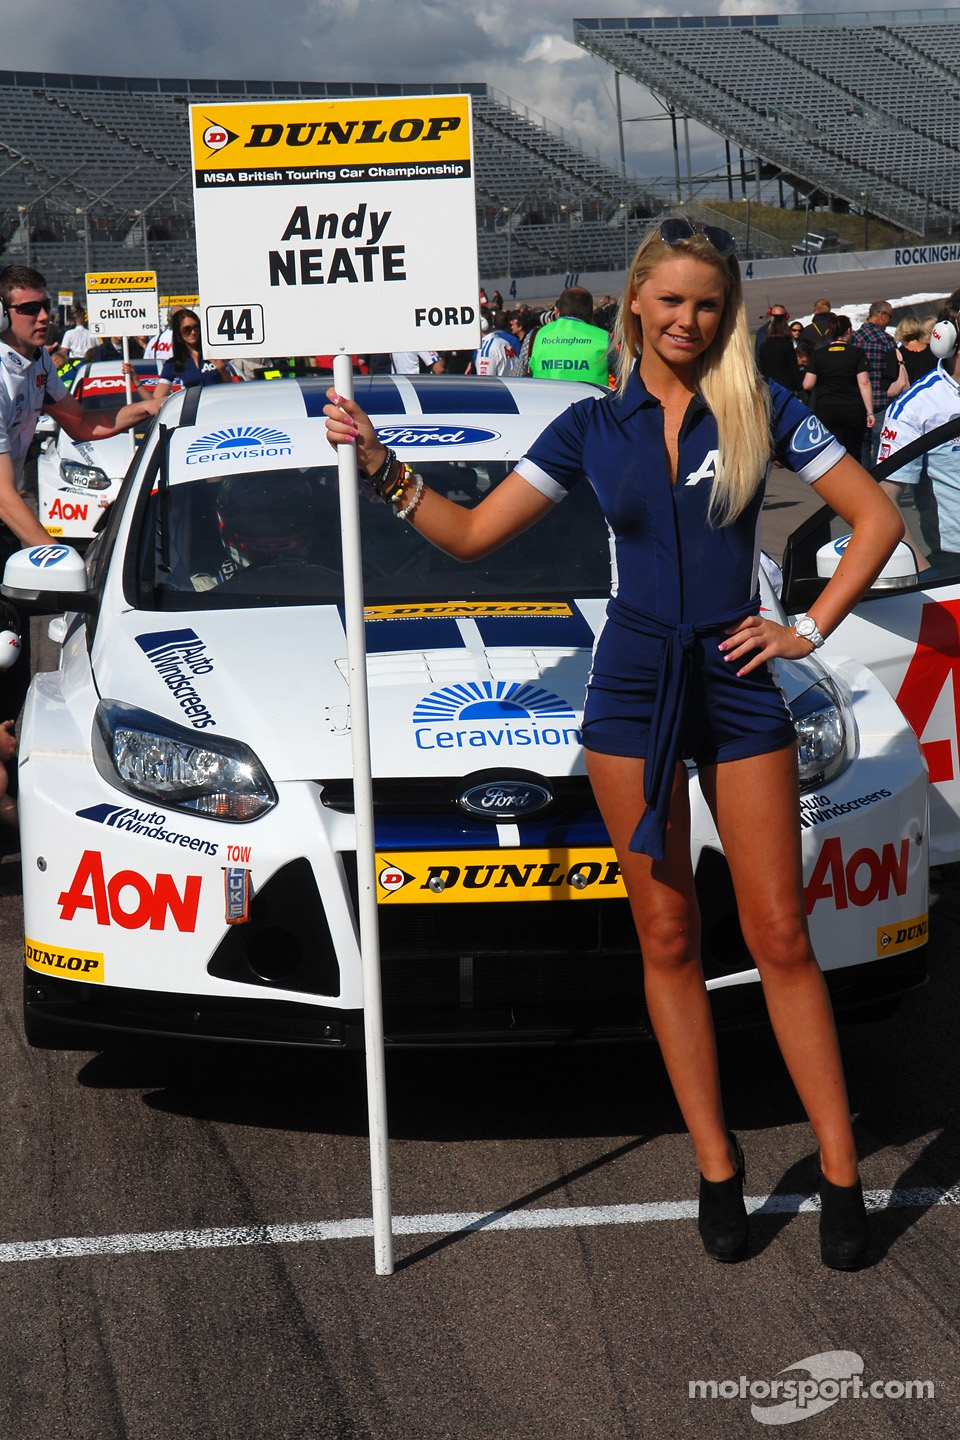 Team Aon grid girl to Andy Neate